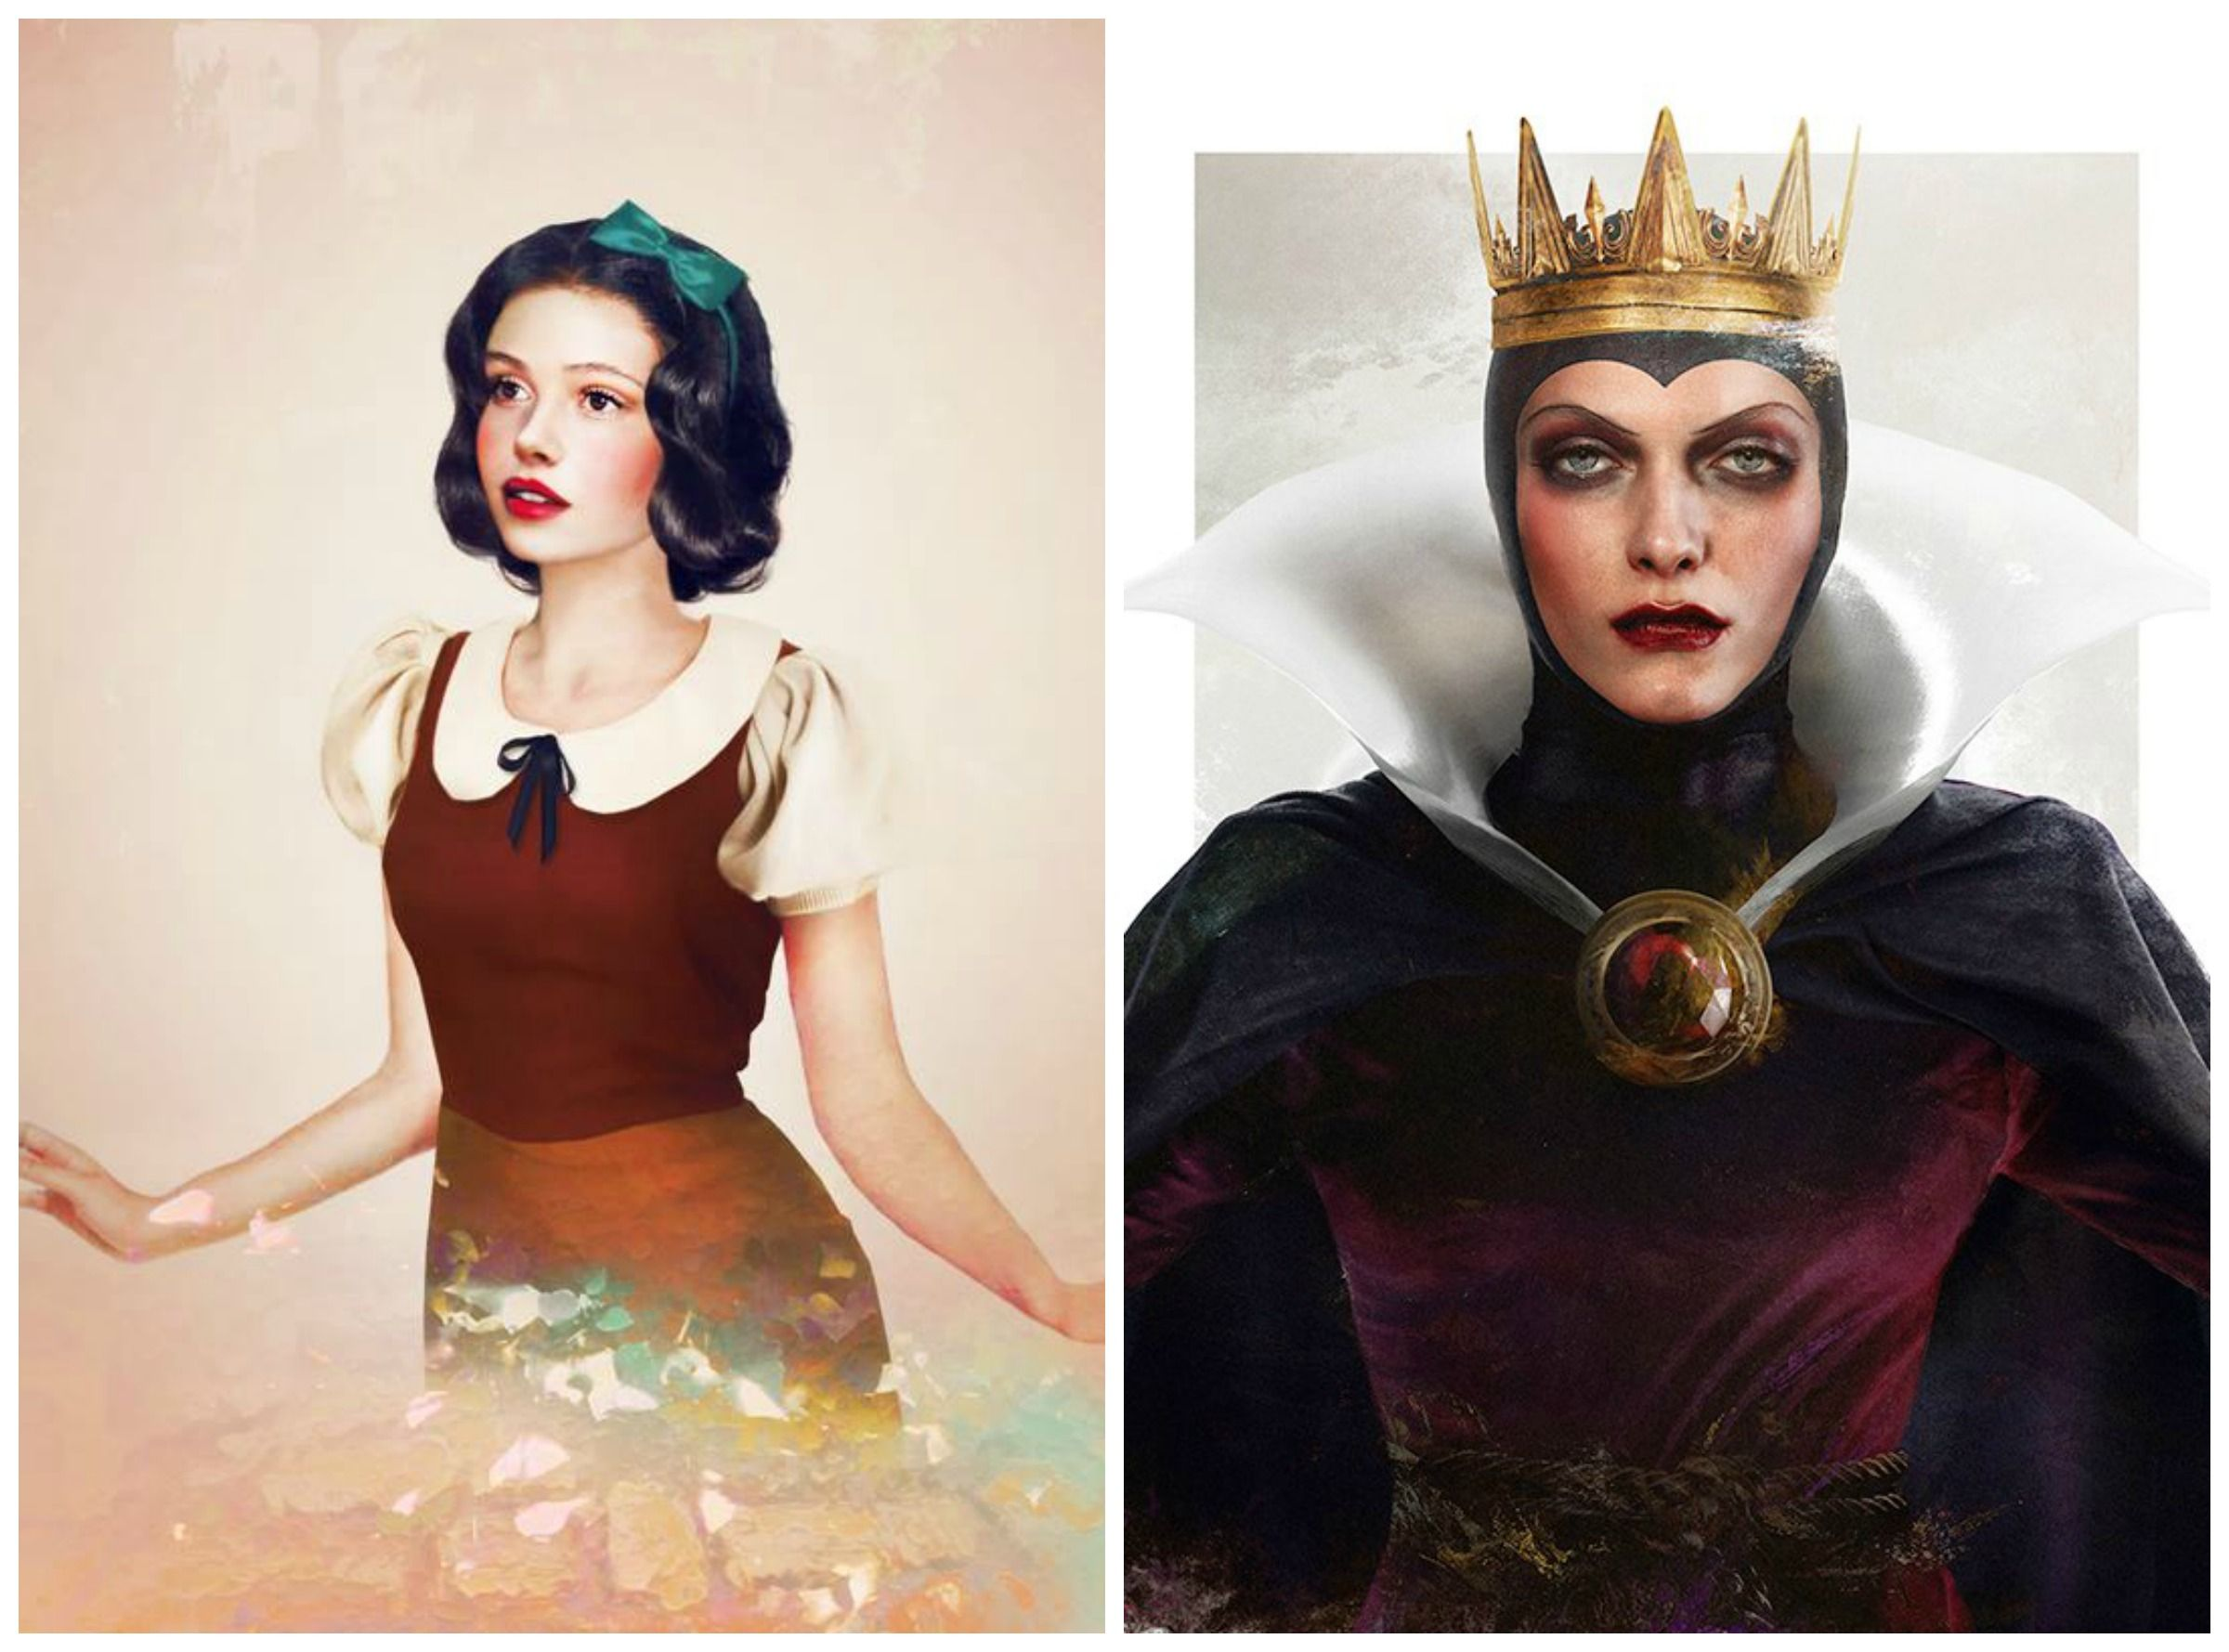 Snow White And The Evil Queen As Real Life Characters By Jirka Vaatainen Design Evil Queen Fantasy World Fairy Tales